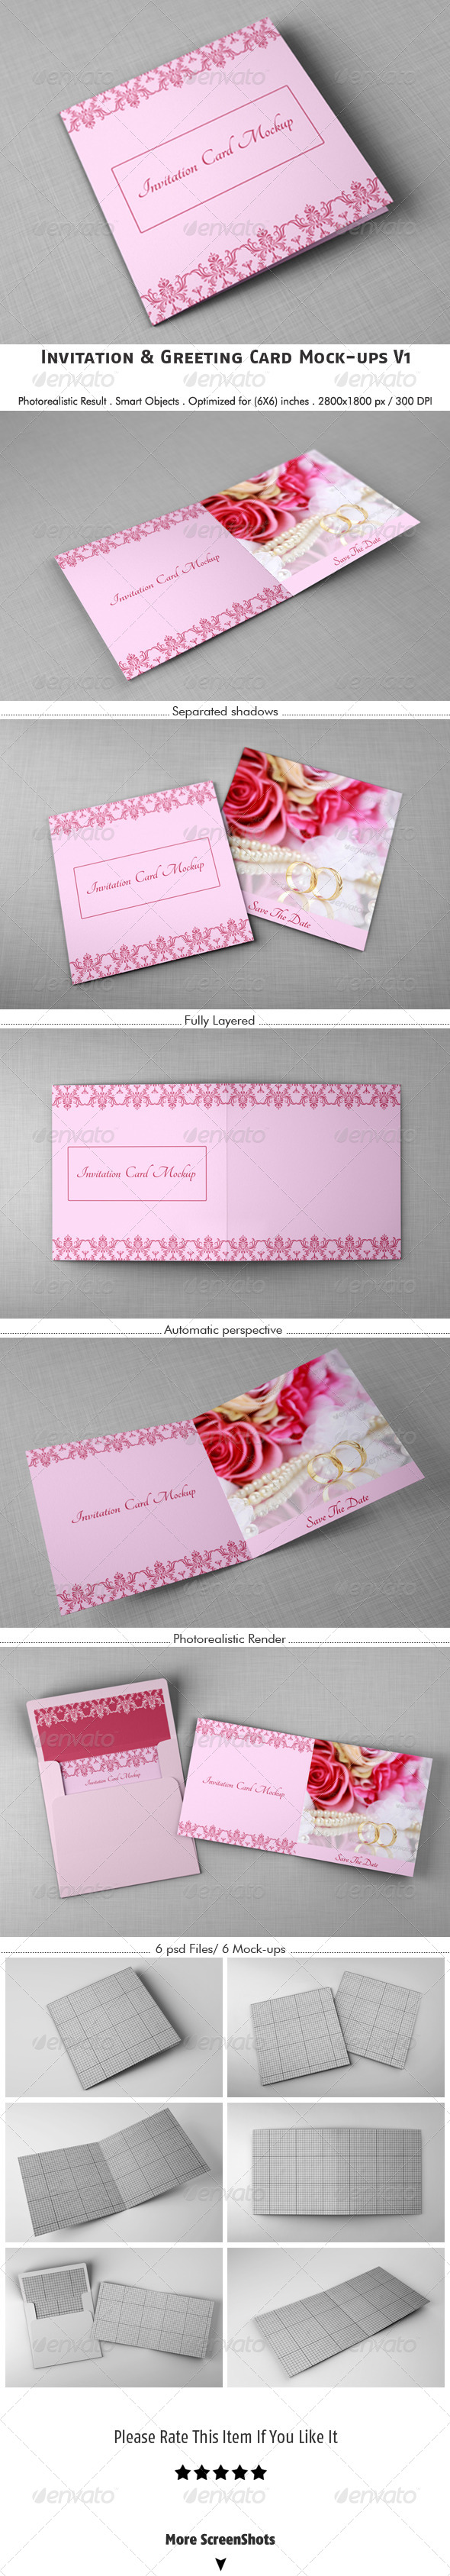 GraphicRiver Invitation & Greeting Card Mockups V1 5438572